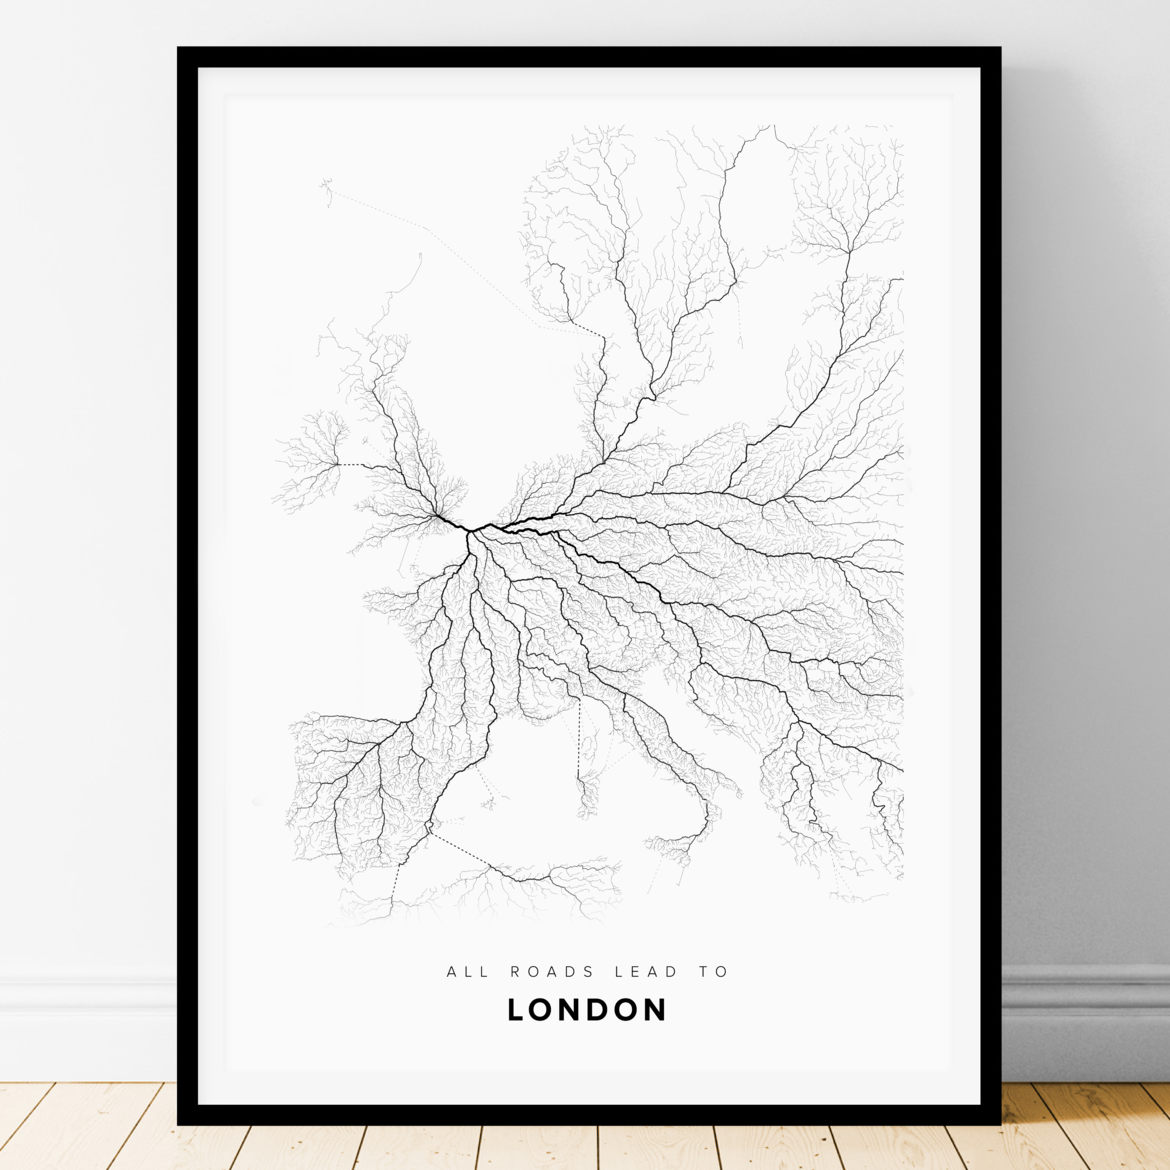 All Roads Lead to London (Portrait)